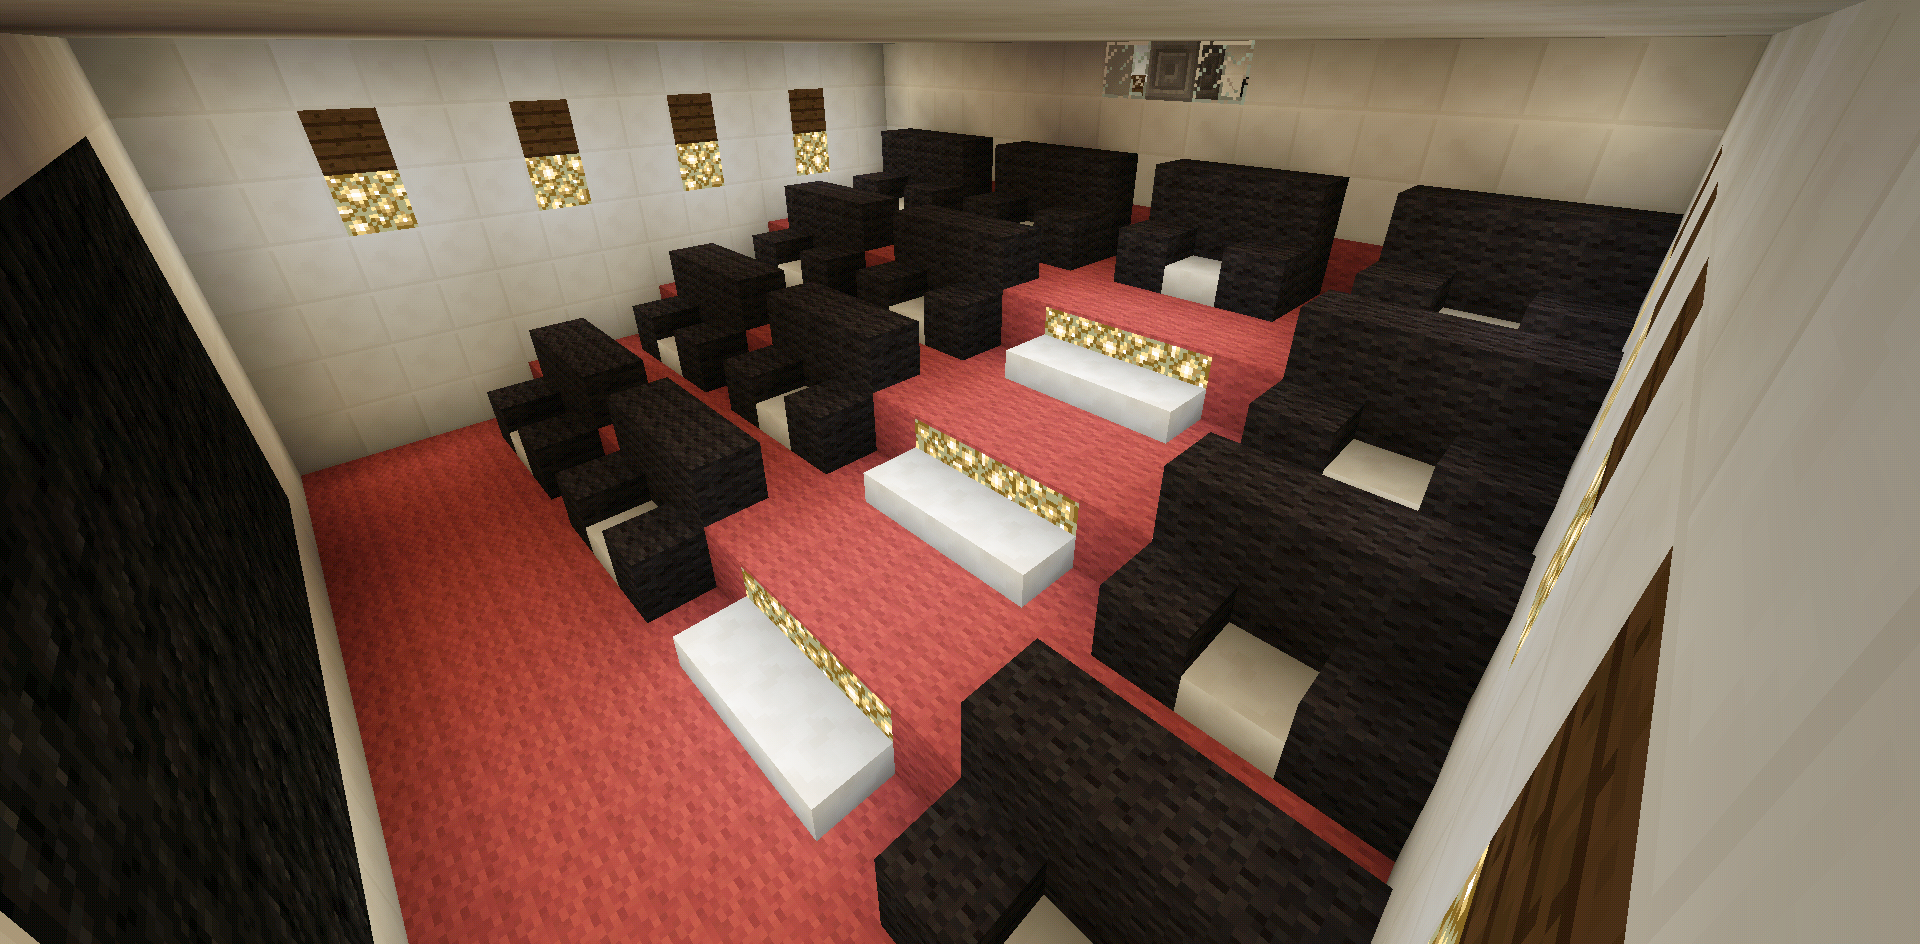 Minecraft Home Movie Theater Entertainment Room Creations - Minecraft haus inneneinrichtung ideen